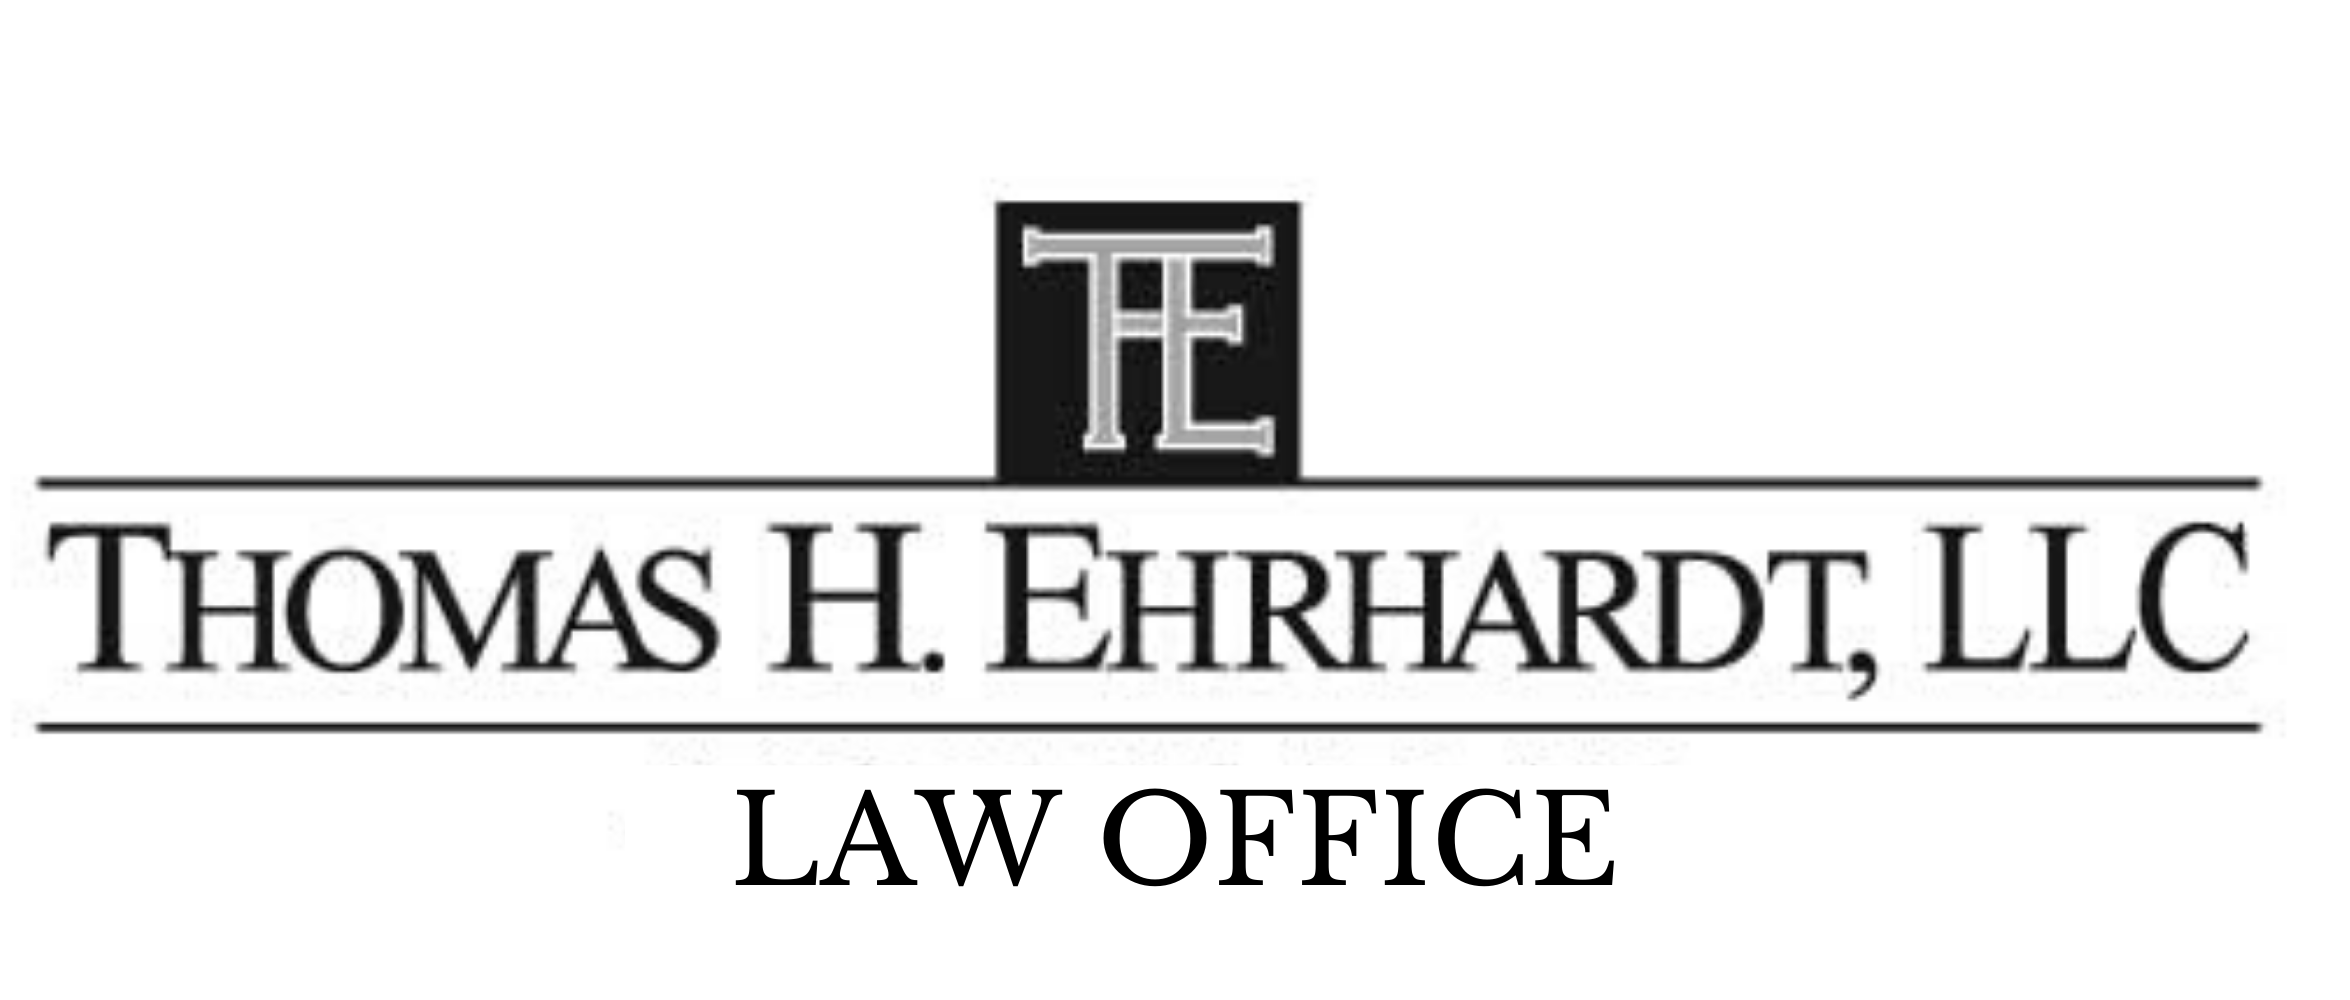 Thomas H. Ehrhardt, LLC